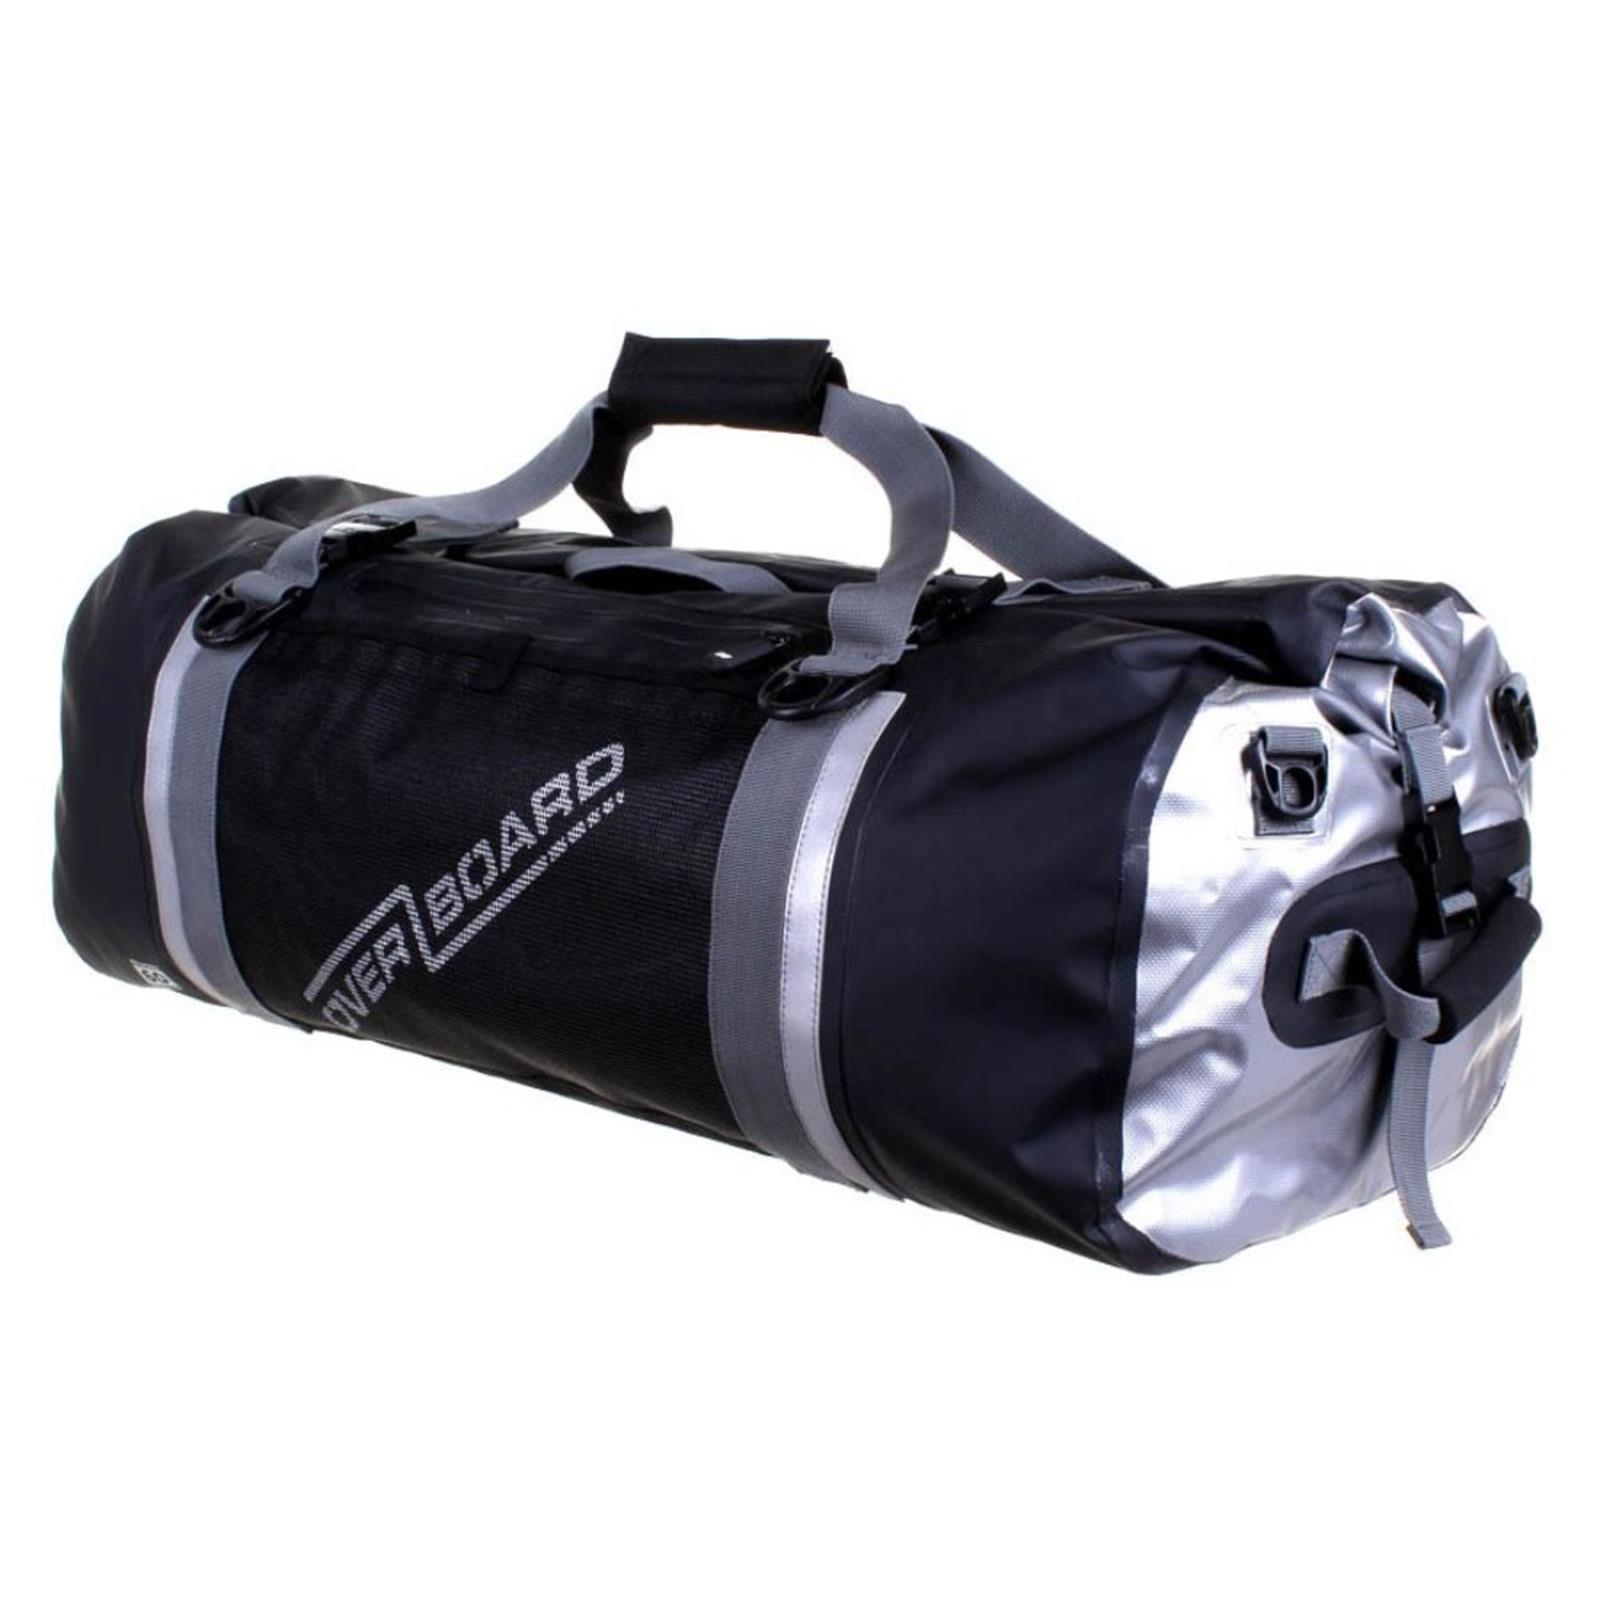 OverBoard wasserdichte Duffel Bag Sports 60 L Schw OB1154BLK  Pro Sports